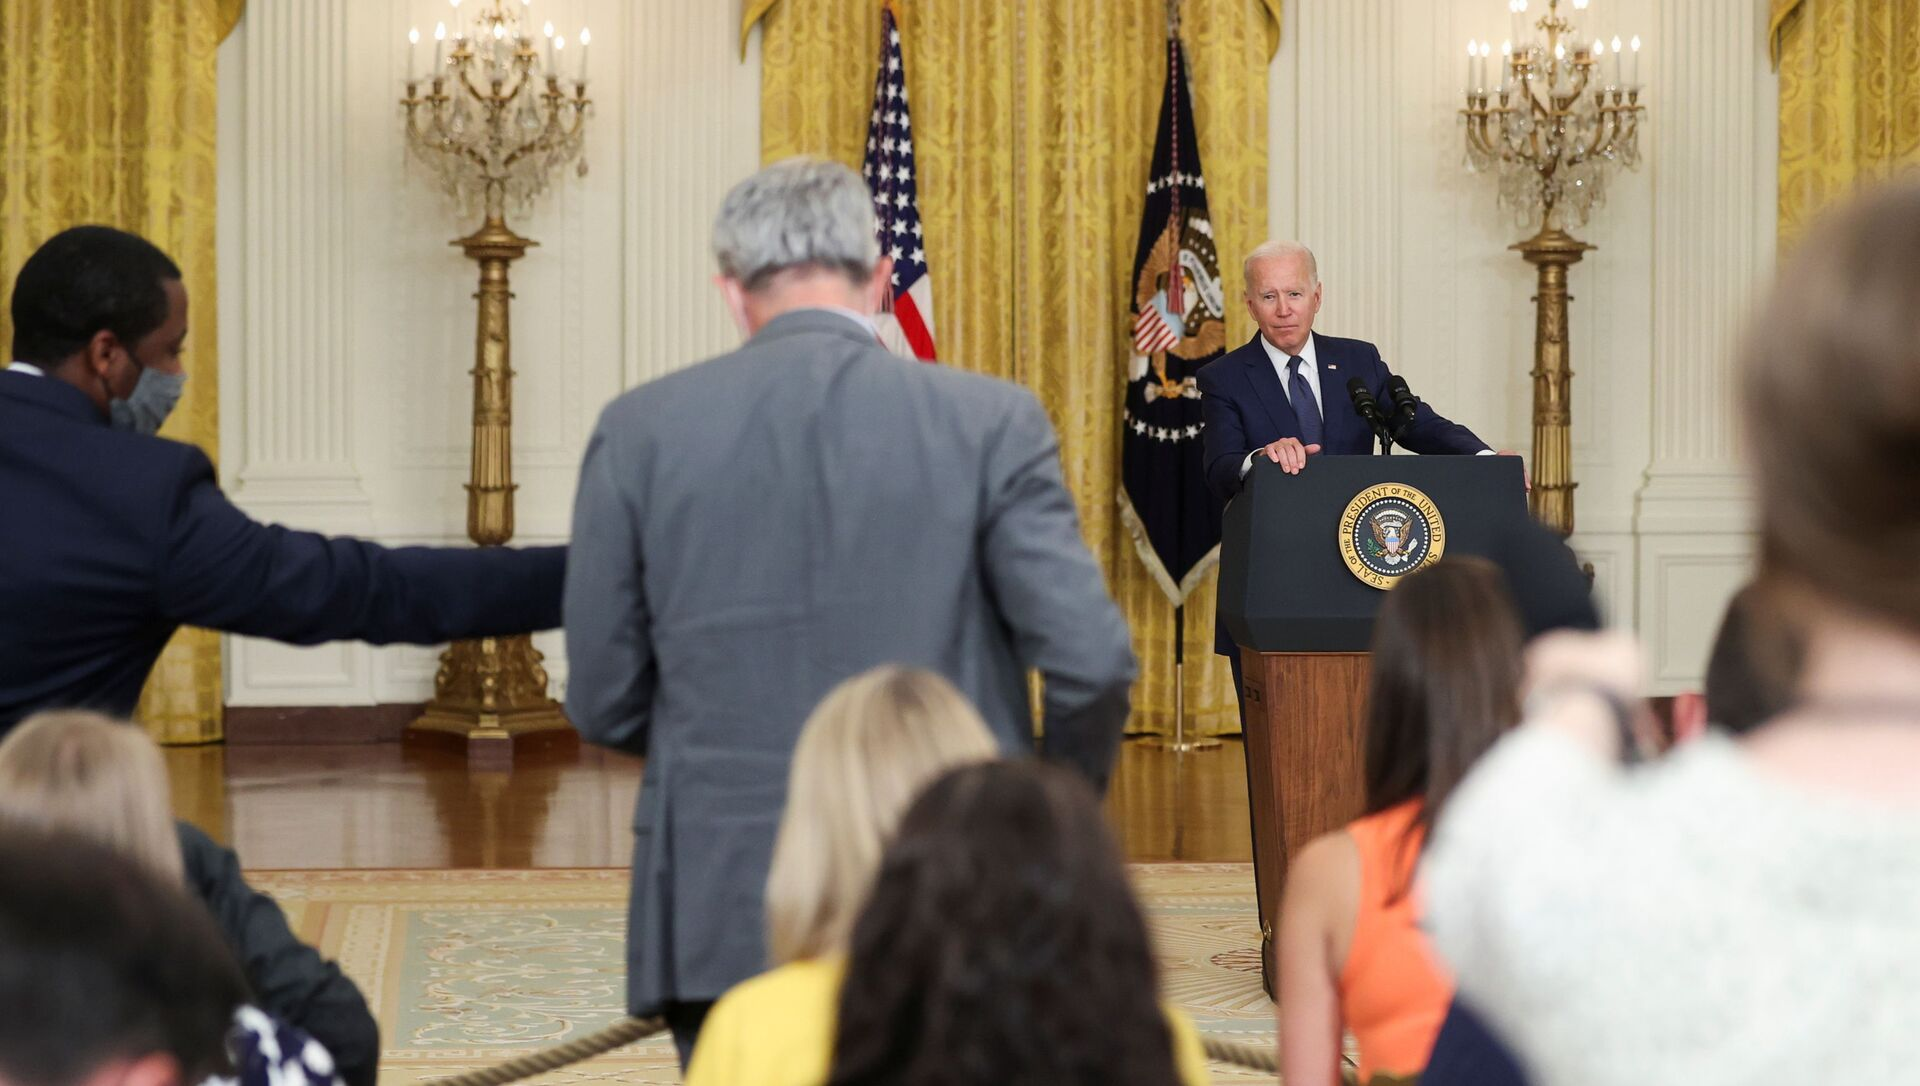 U.S. President Joe Biden answers questions from the media as he delivers remarks about Afghanistan, from the East Room of the White House in Washington, U.S. August 26, 2021 - Sputnik International, 1920, 26.08.2021